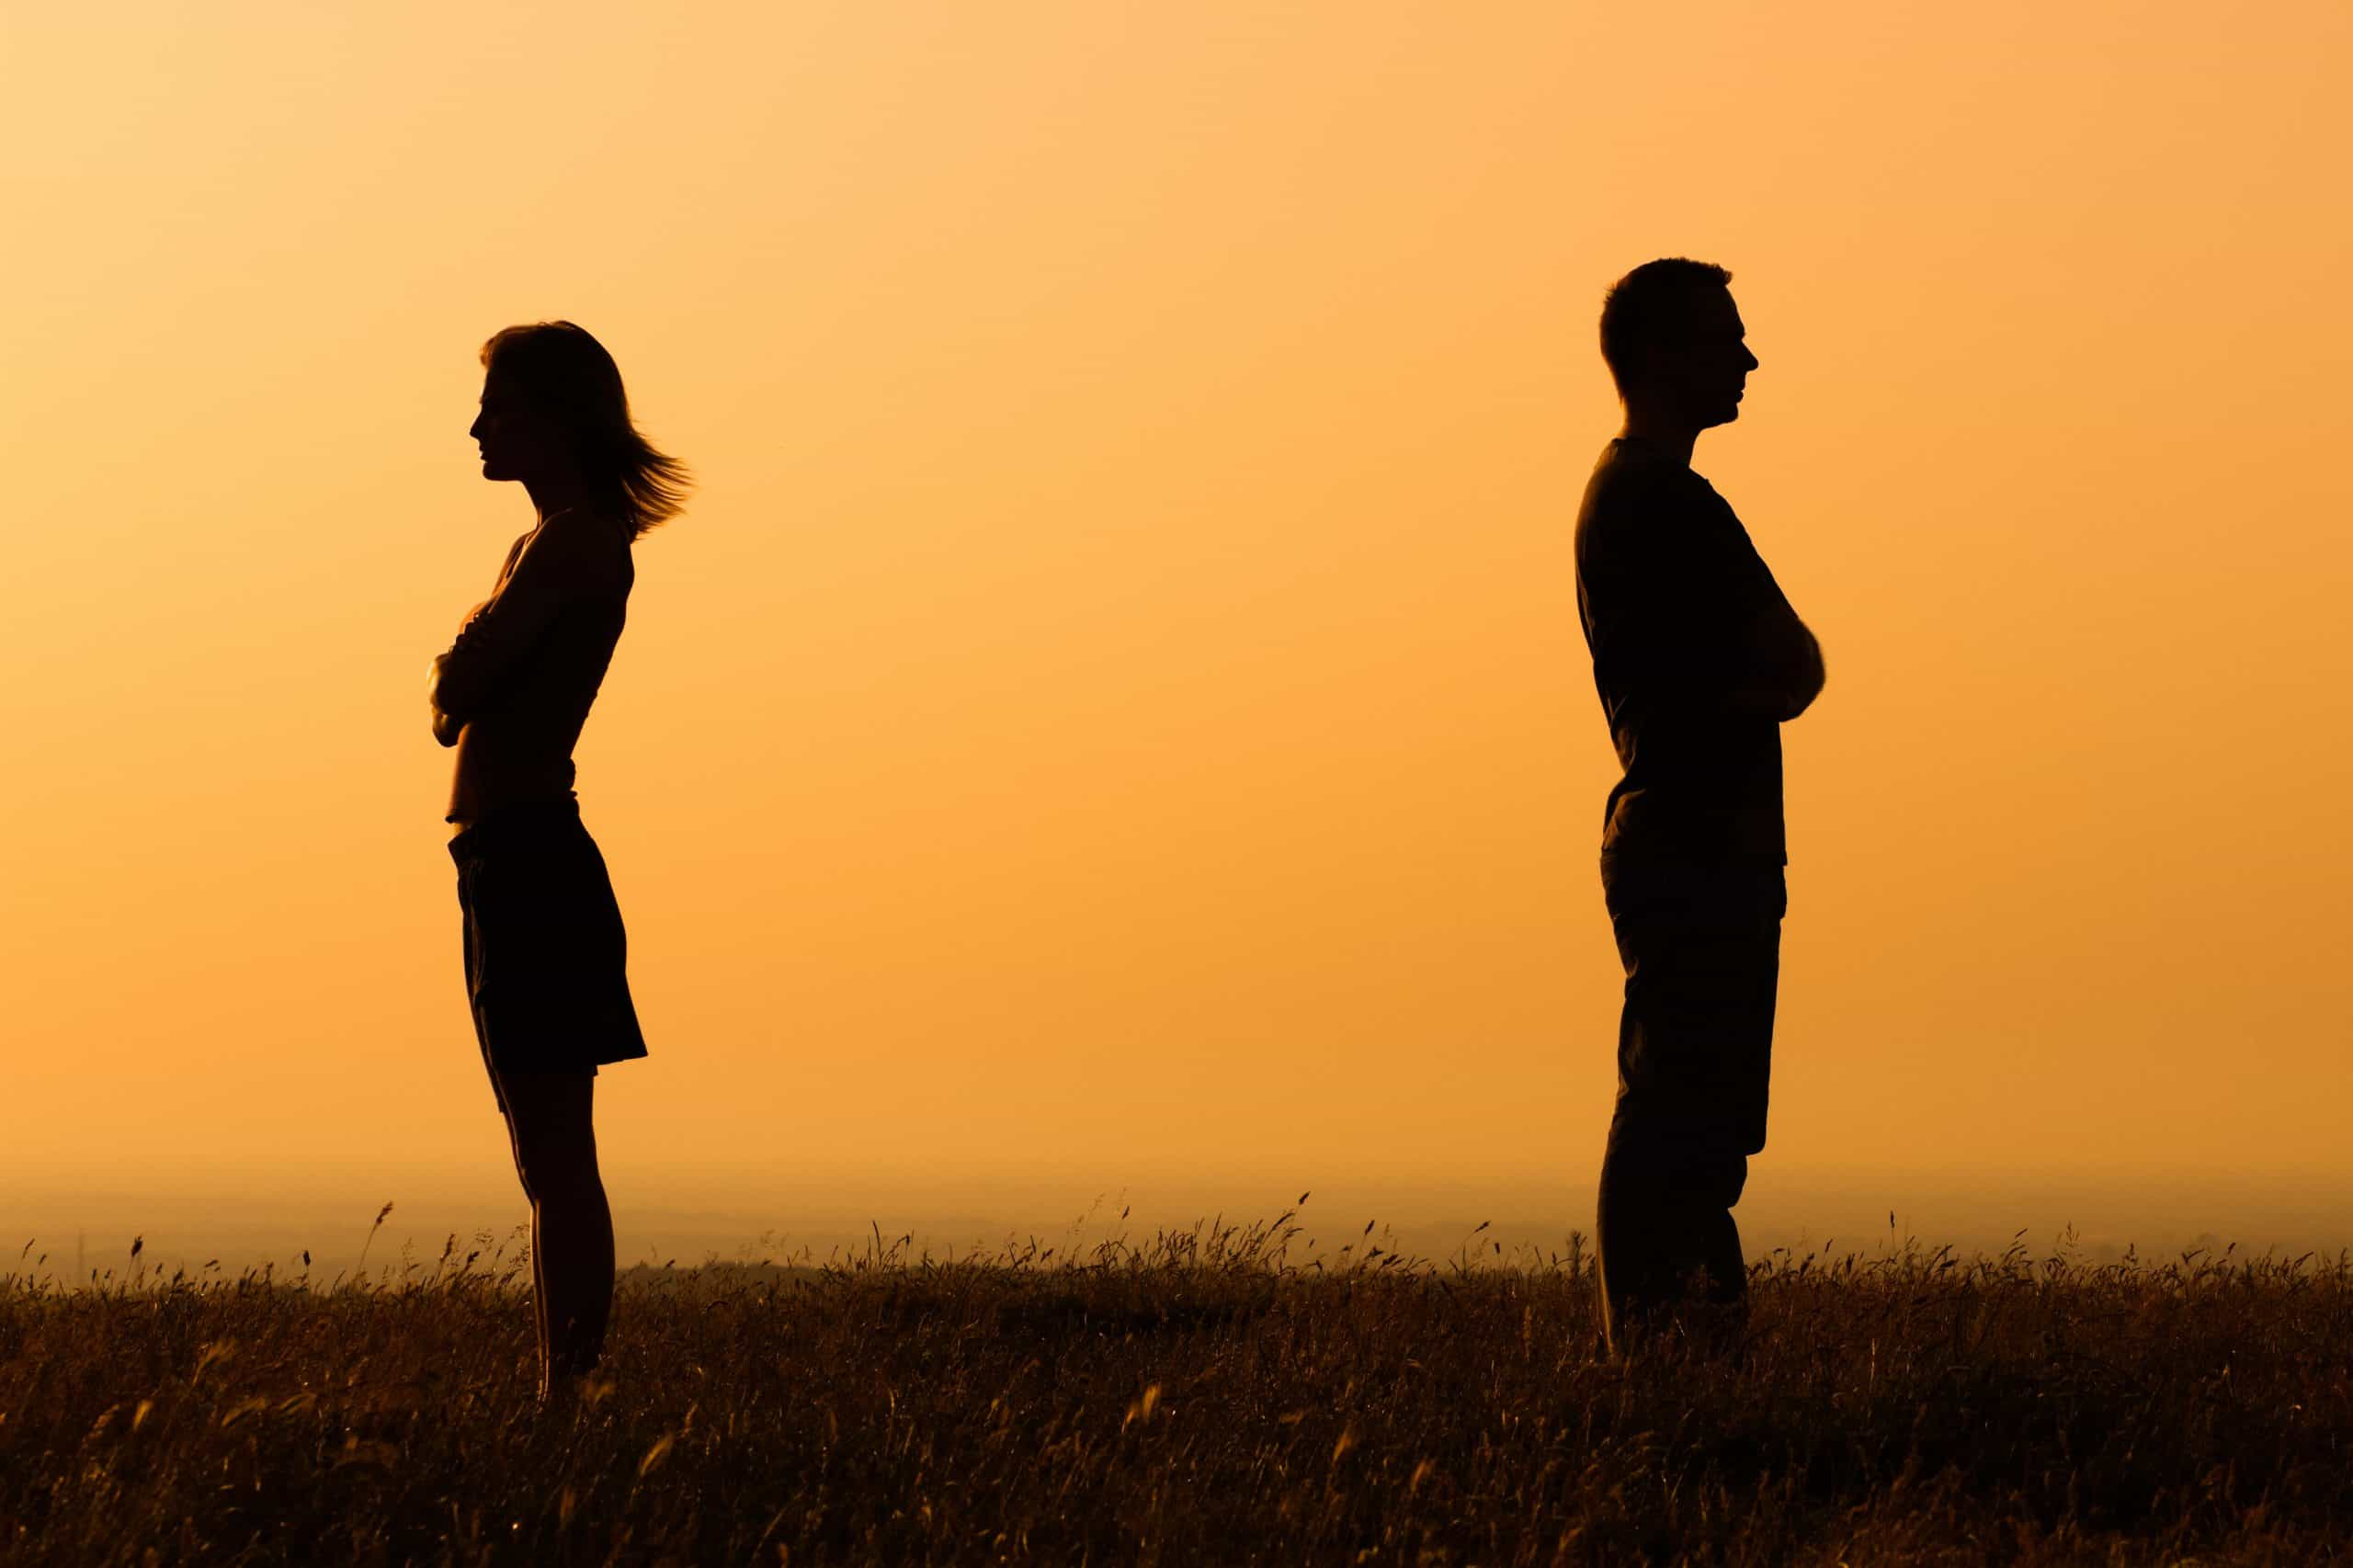 Silhouette of a angry woman and man facing away from  each other with in a field with an orange background